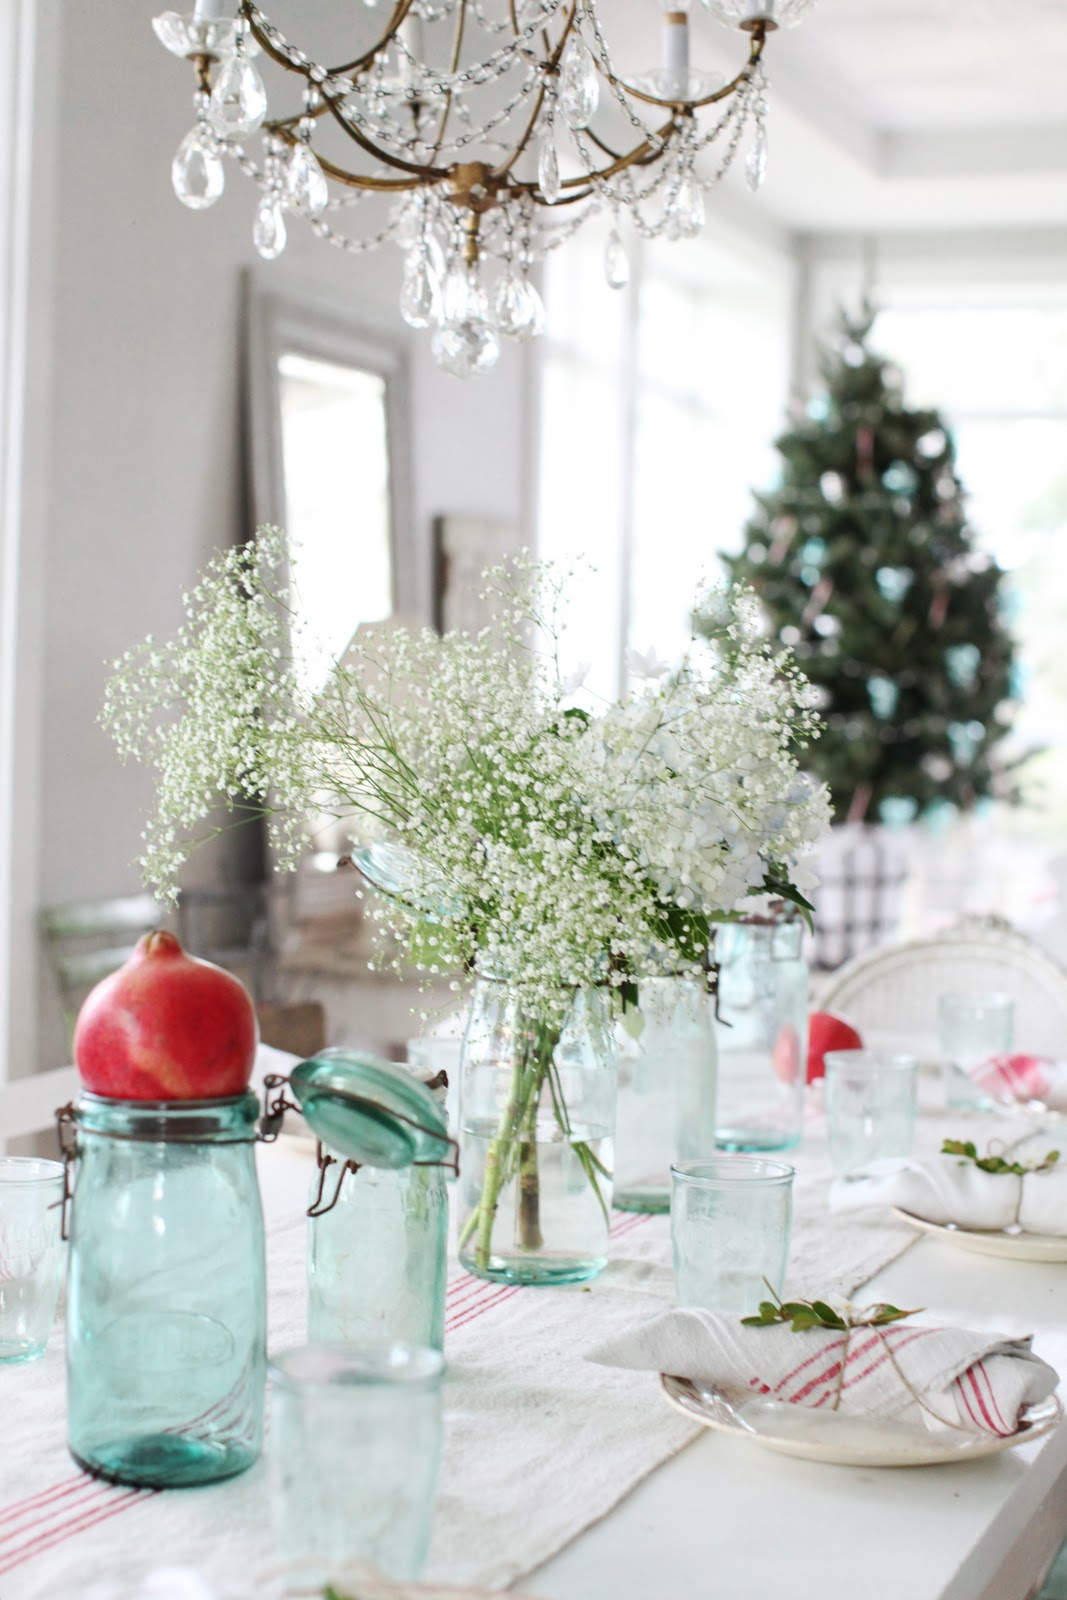 Dreamy Whites: A Simple Christmas Table Setting